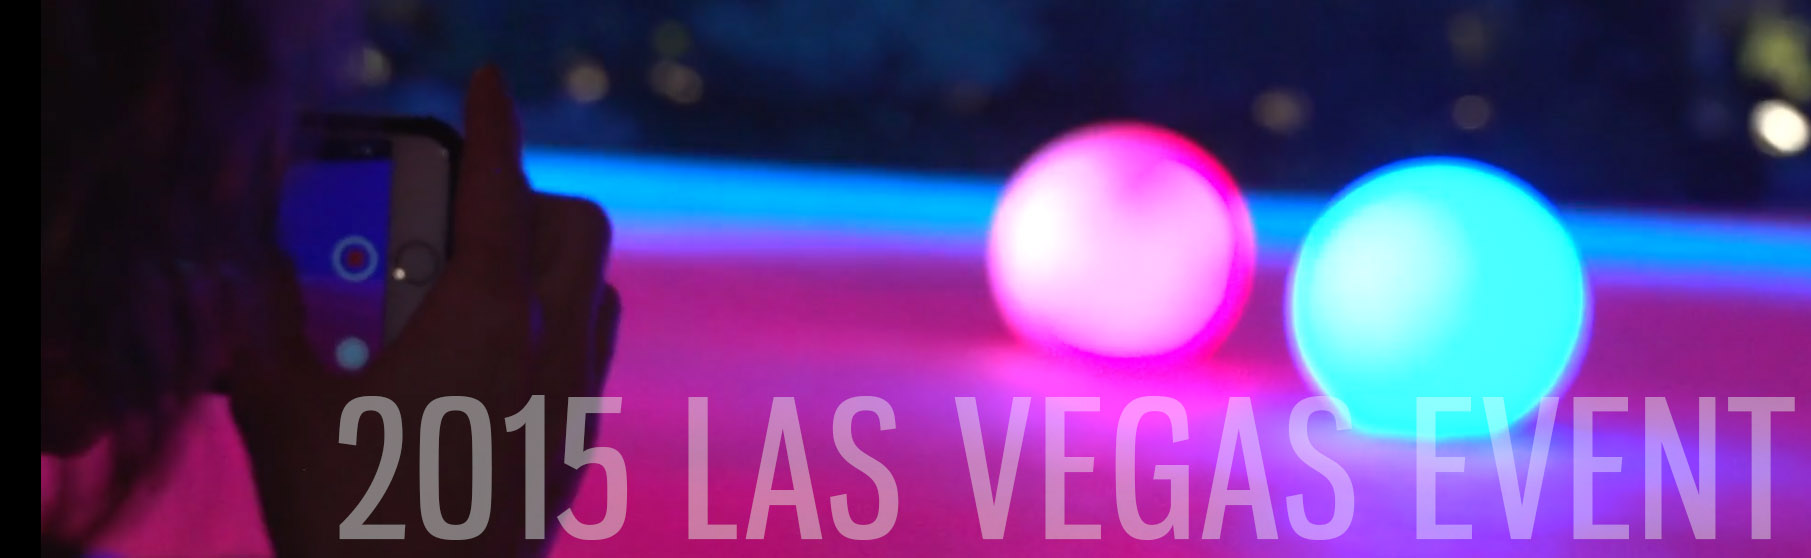 2015 Vegas Party - Colored Balls.jpg